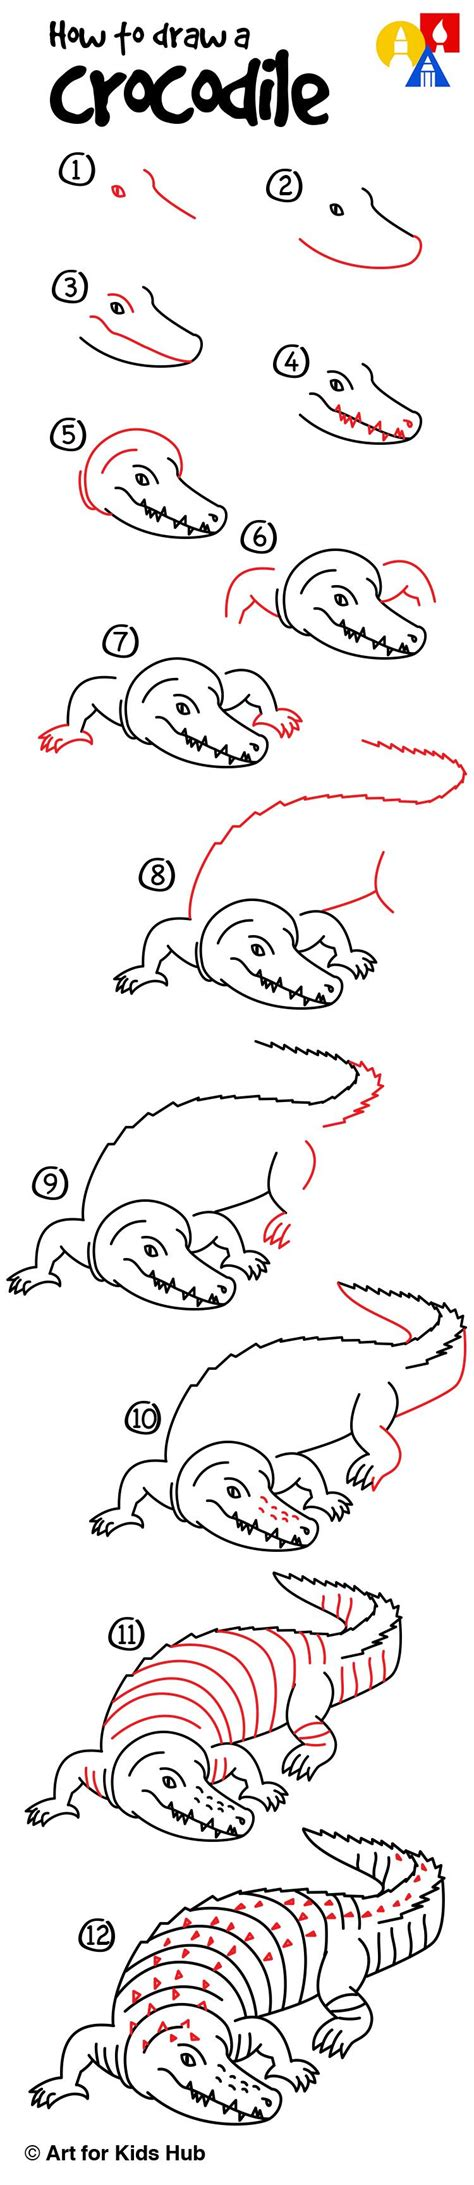 How To Draw A Realistic Crocodile crocodile drawing for